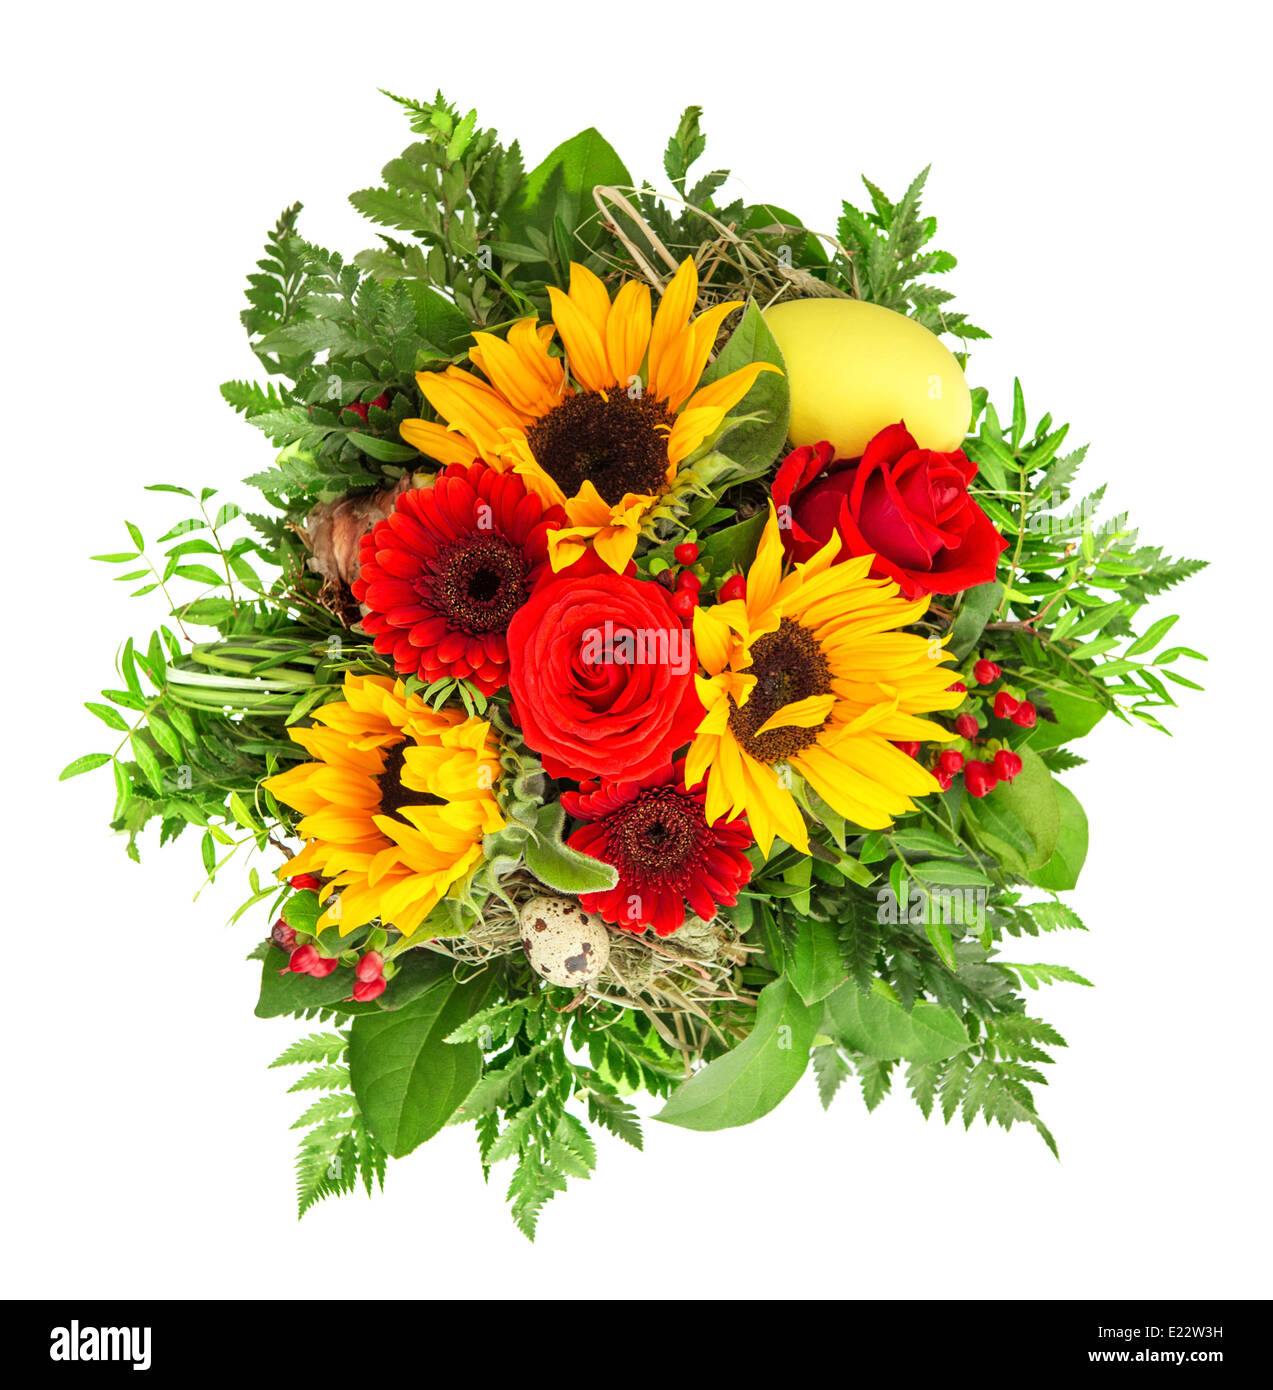 Yellow Roses Sunflower Flowers Stock Photos Yellow Roses Sunflower